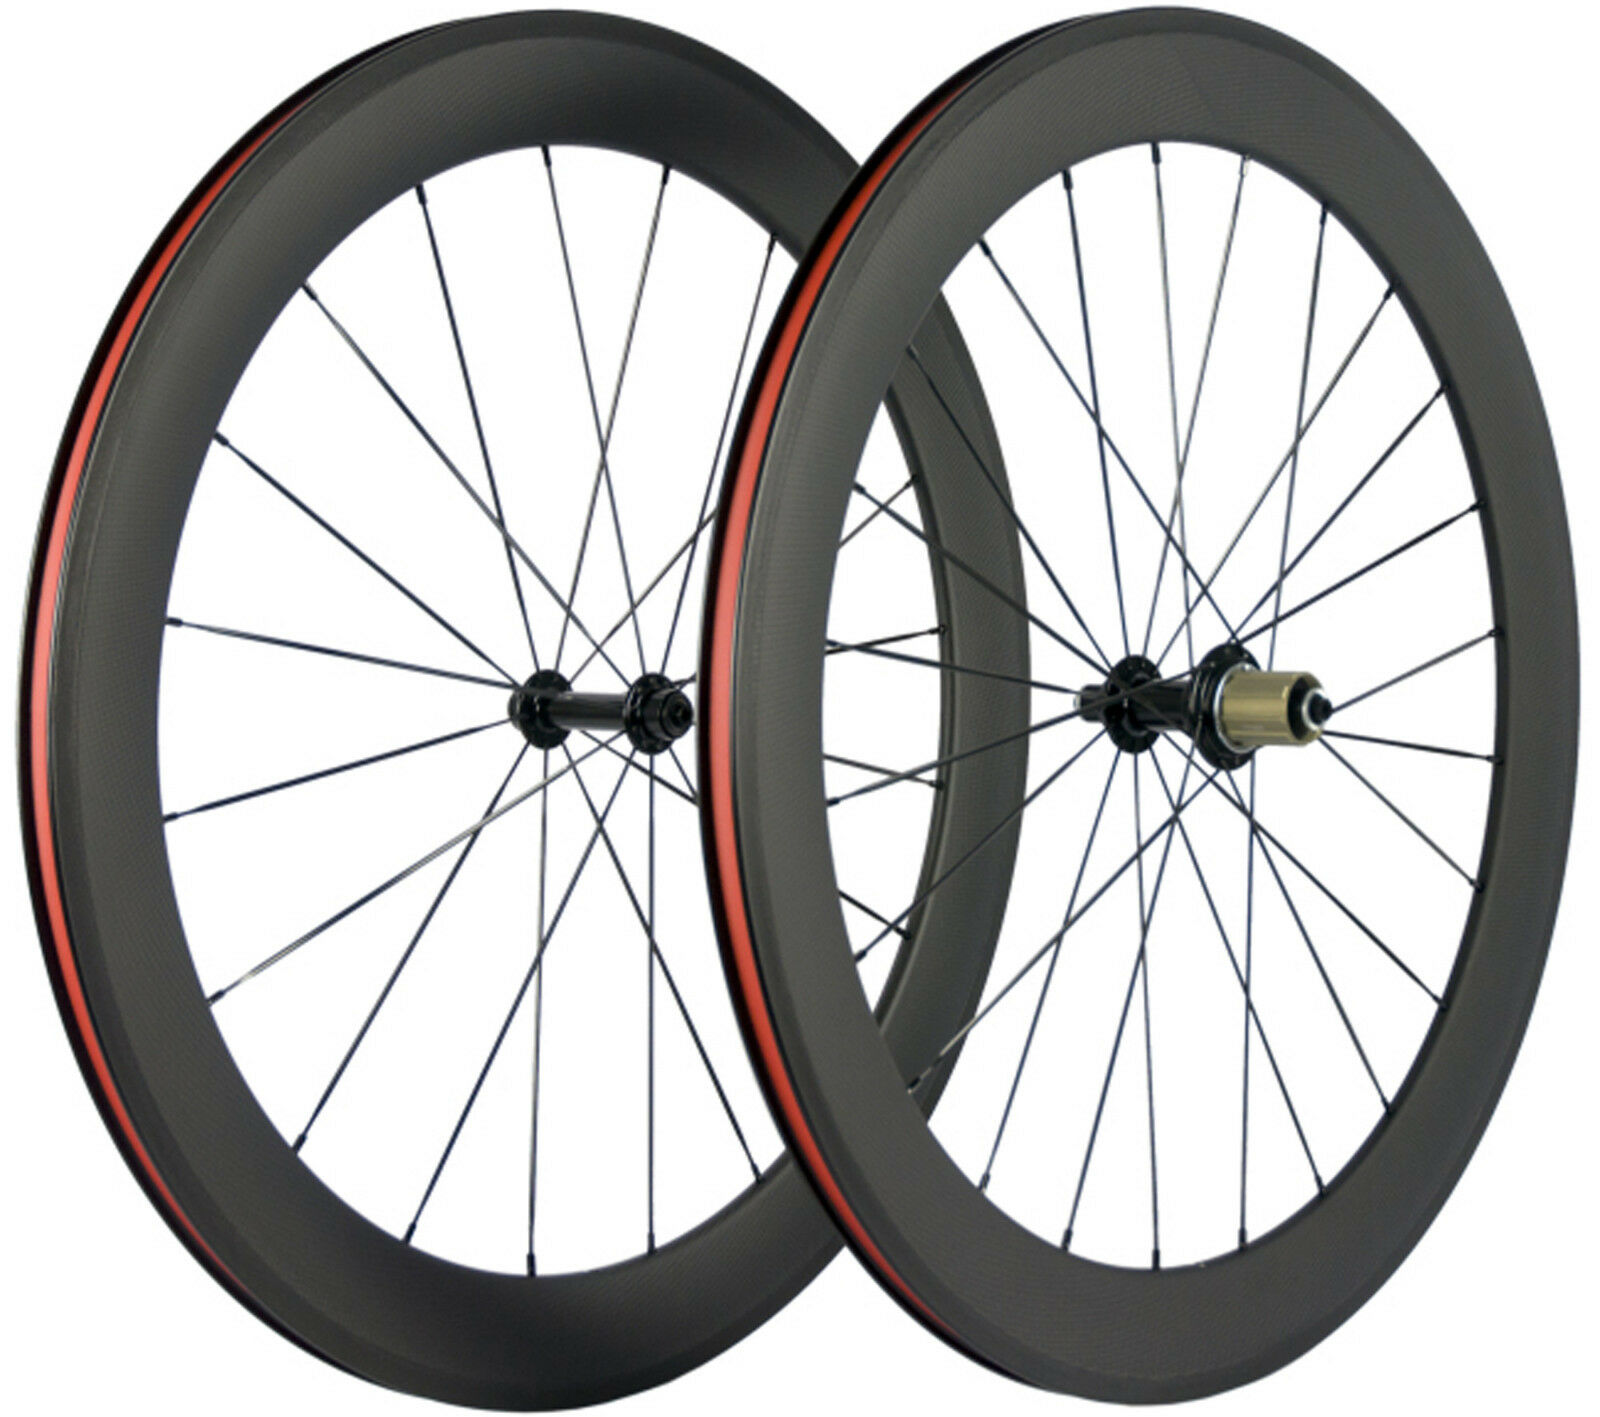 Carbon Wheelset 700C  60mm Depth Bicycle Wheels Powerway R13 23mm Width Clincher  come to choose your own sports style